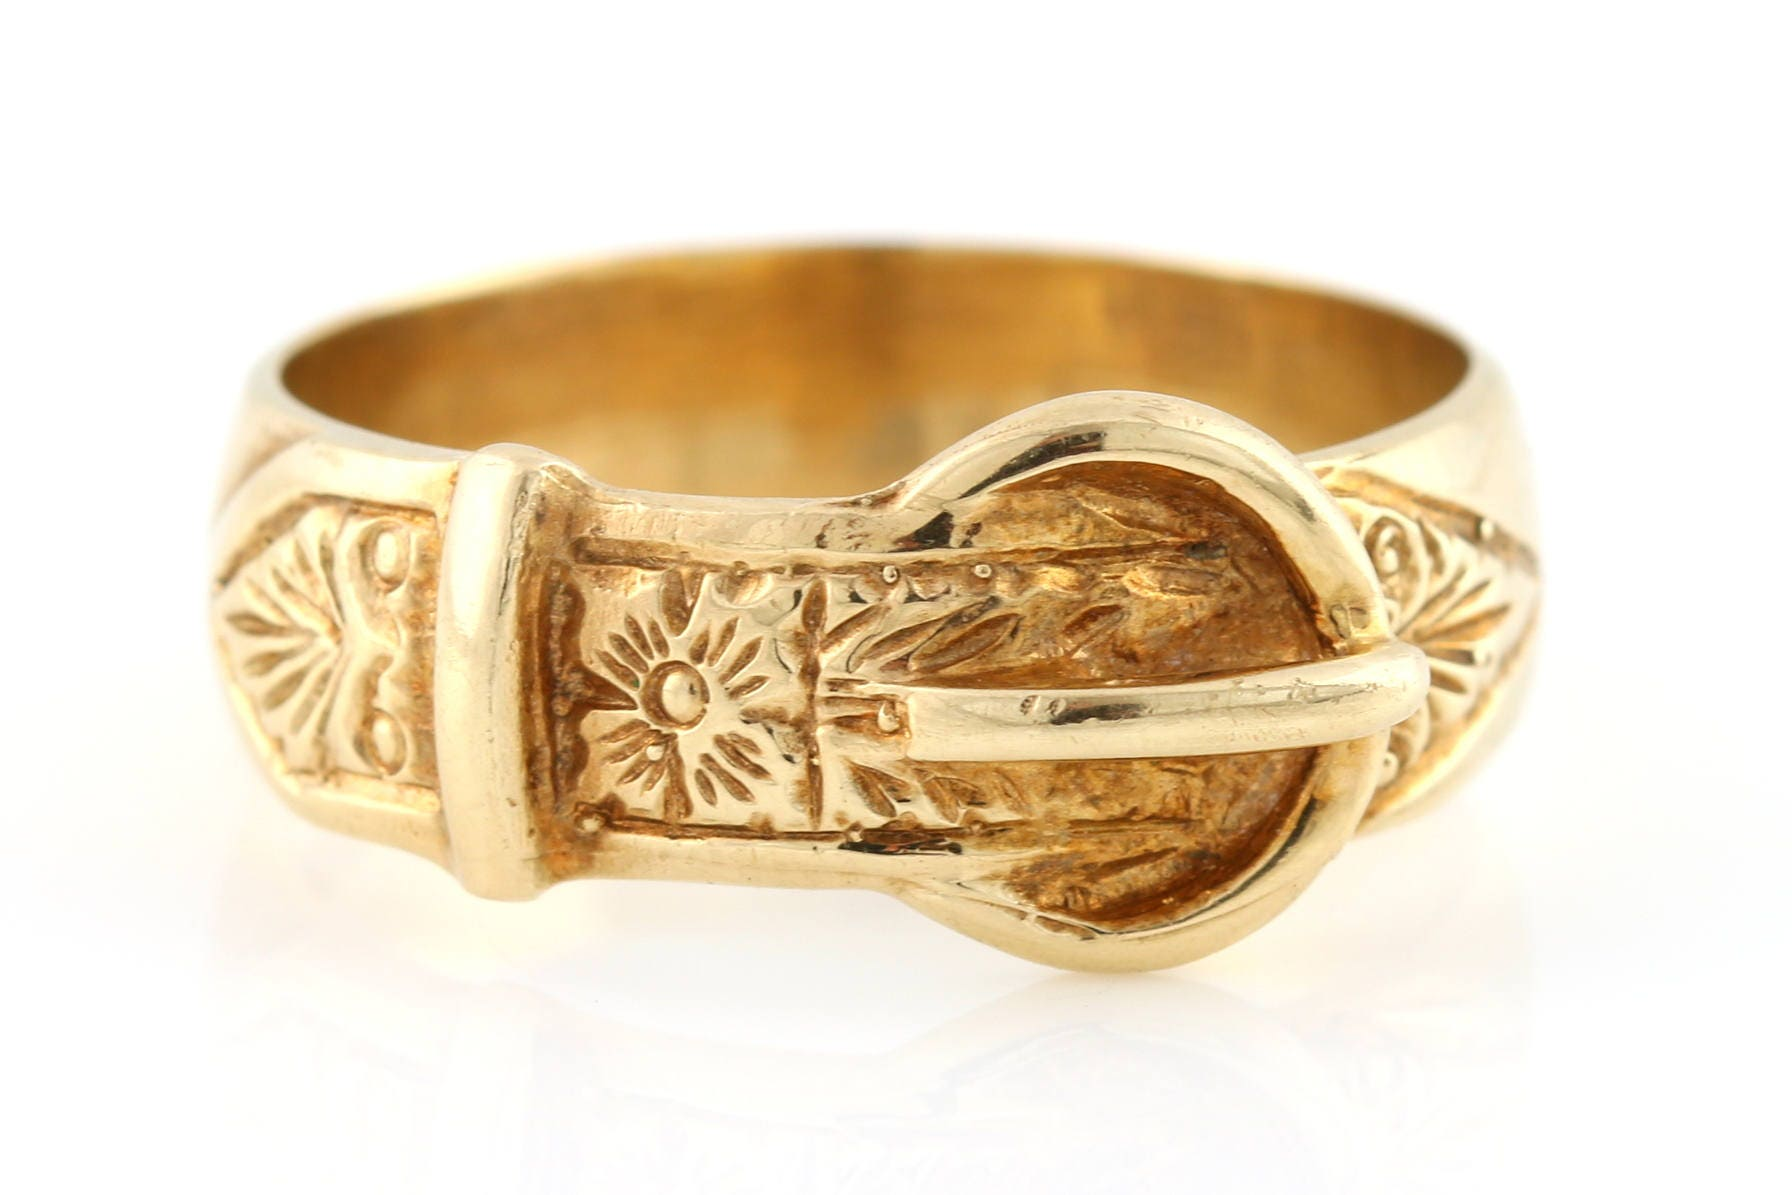 Beautiful 9ct Yellow Gold Victorian Buckle Ring  c1840 Antique 9ct Gold Buckle Ring Antique Gold Wedding Band Patterned Stacking Ring